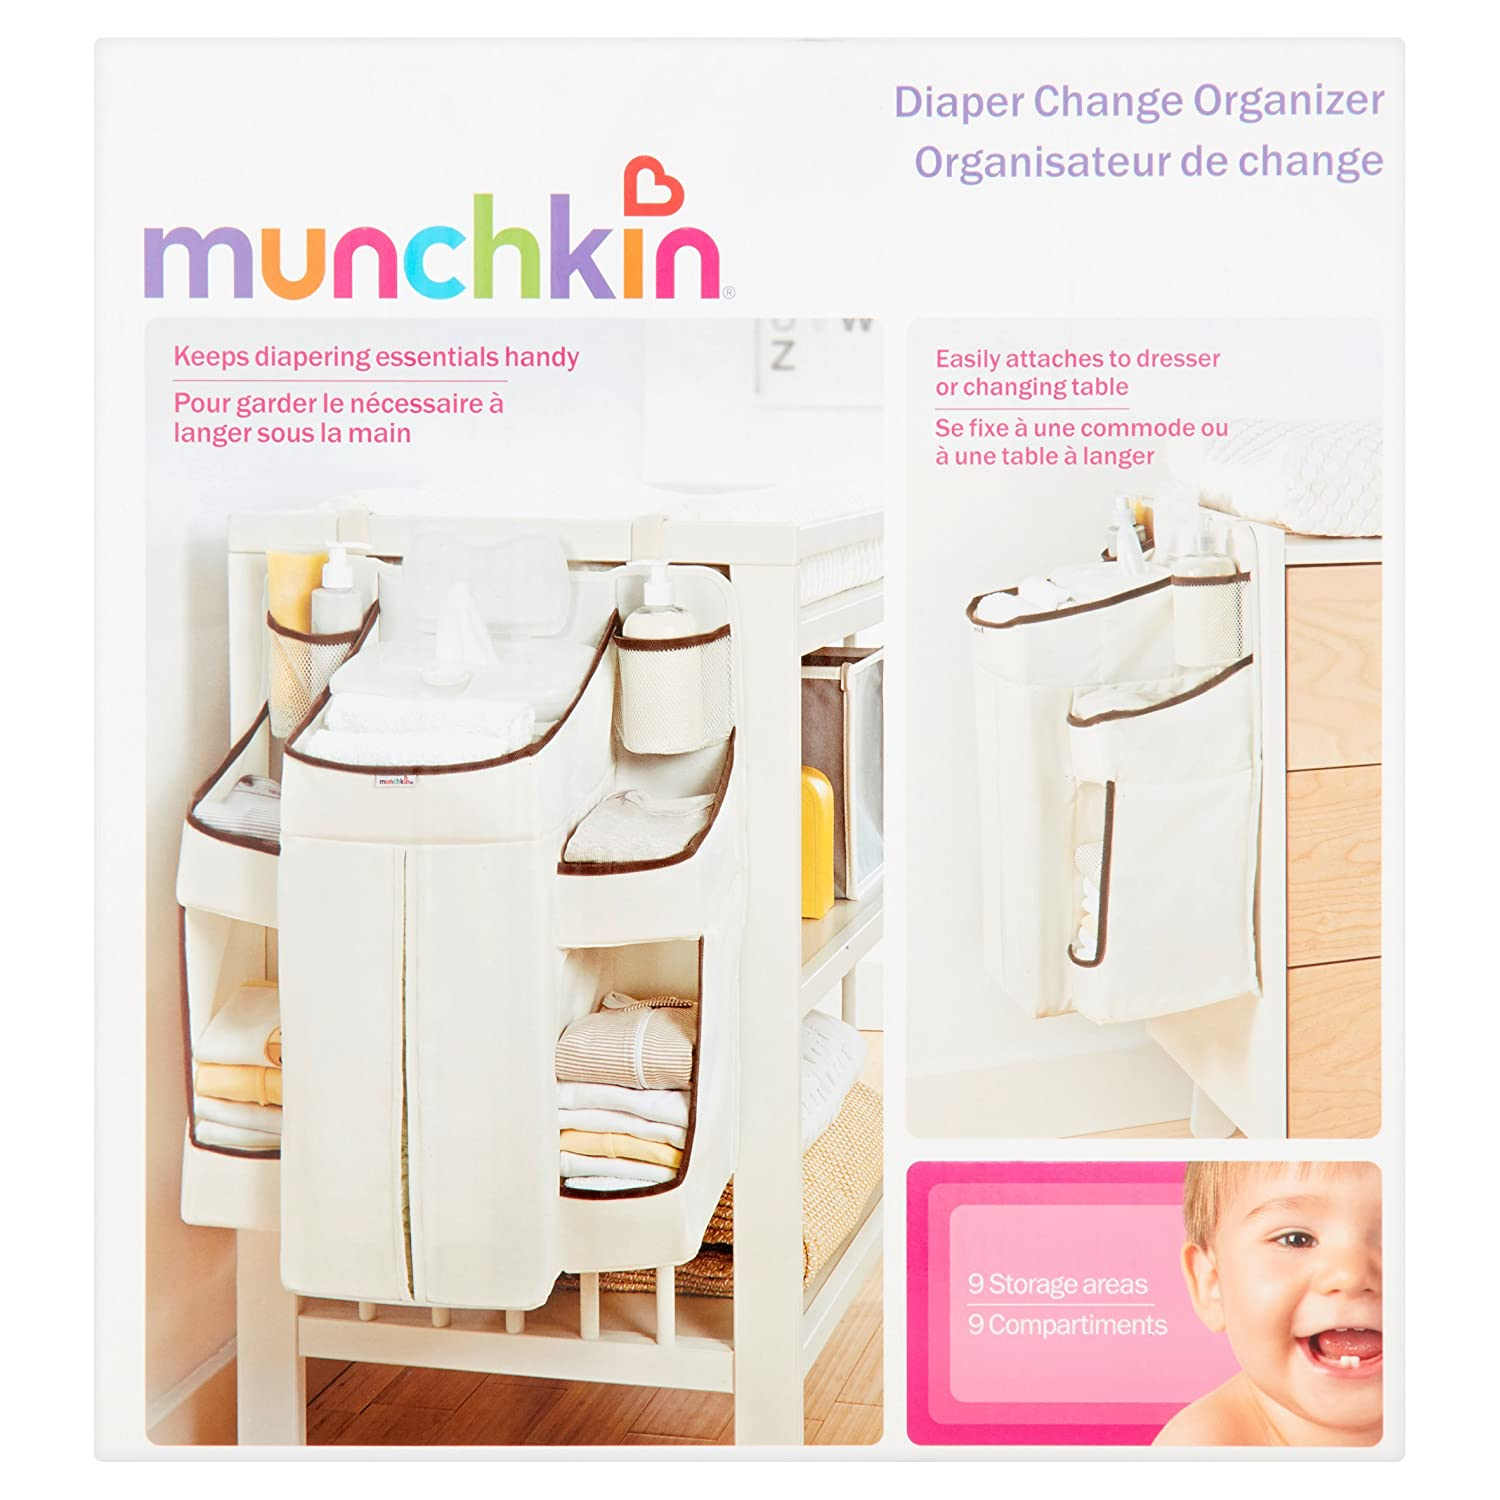 Amazon.com : hanging Diaper Change Organizer before or after feeding caddy for changing table : Baby